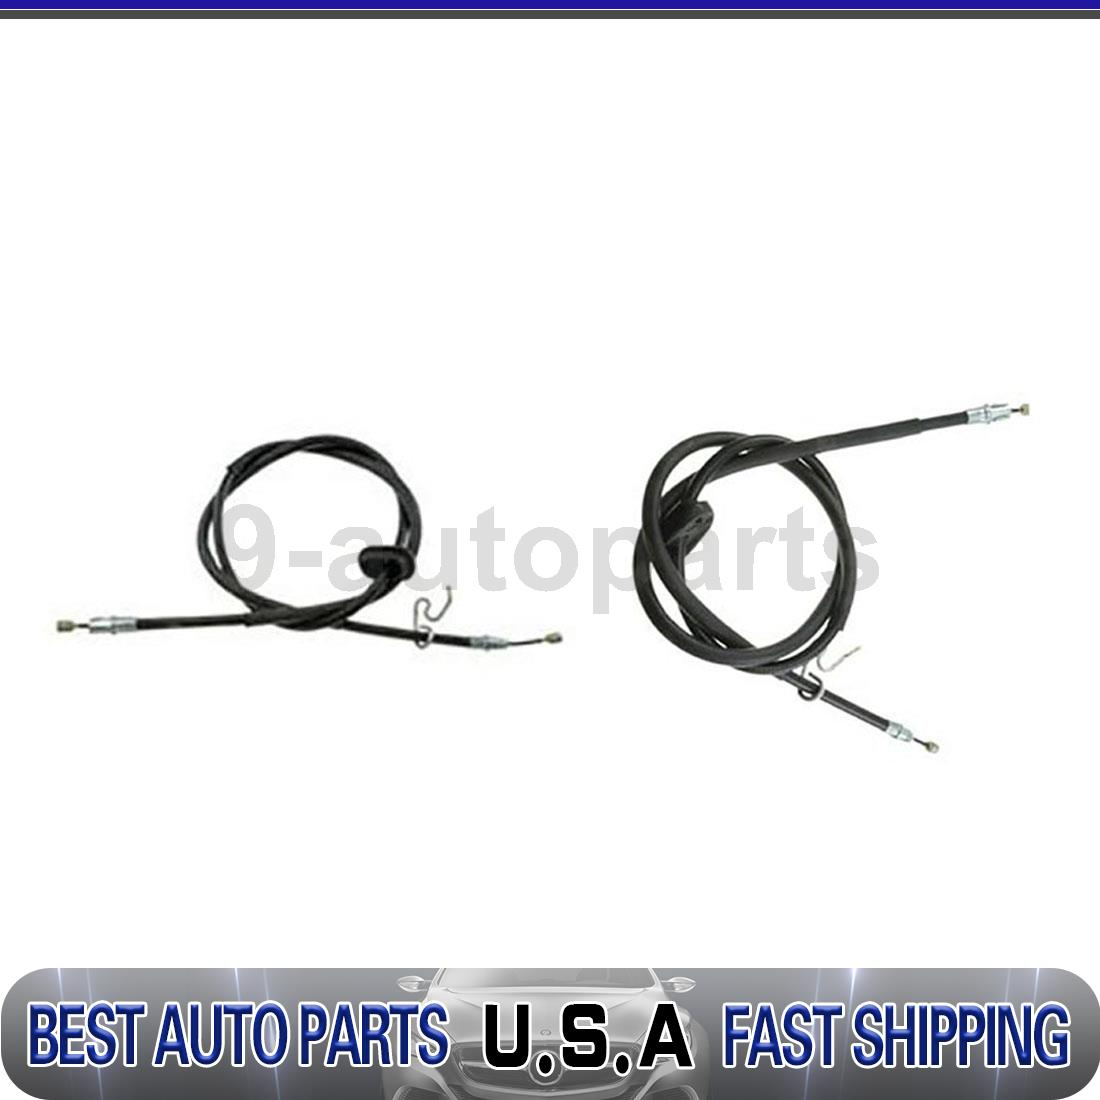 Dorman First Stop Parking Brake Cable Rear Left Rear Right 2x For Mustang Ford